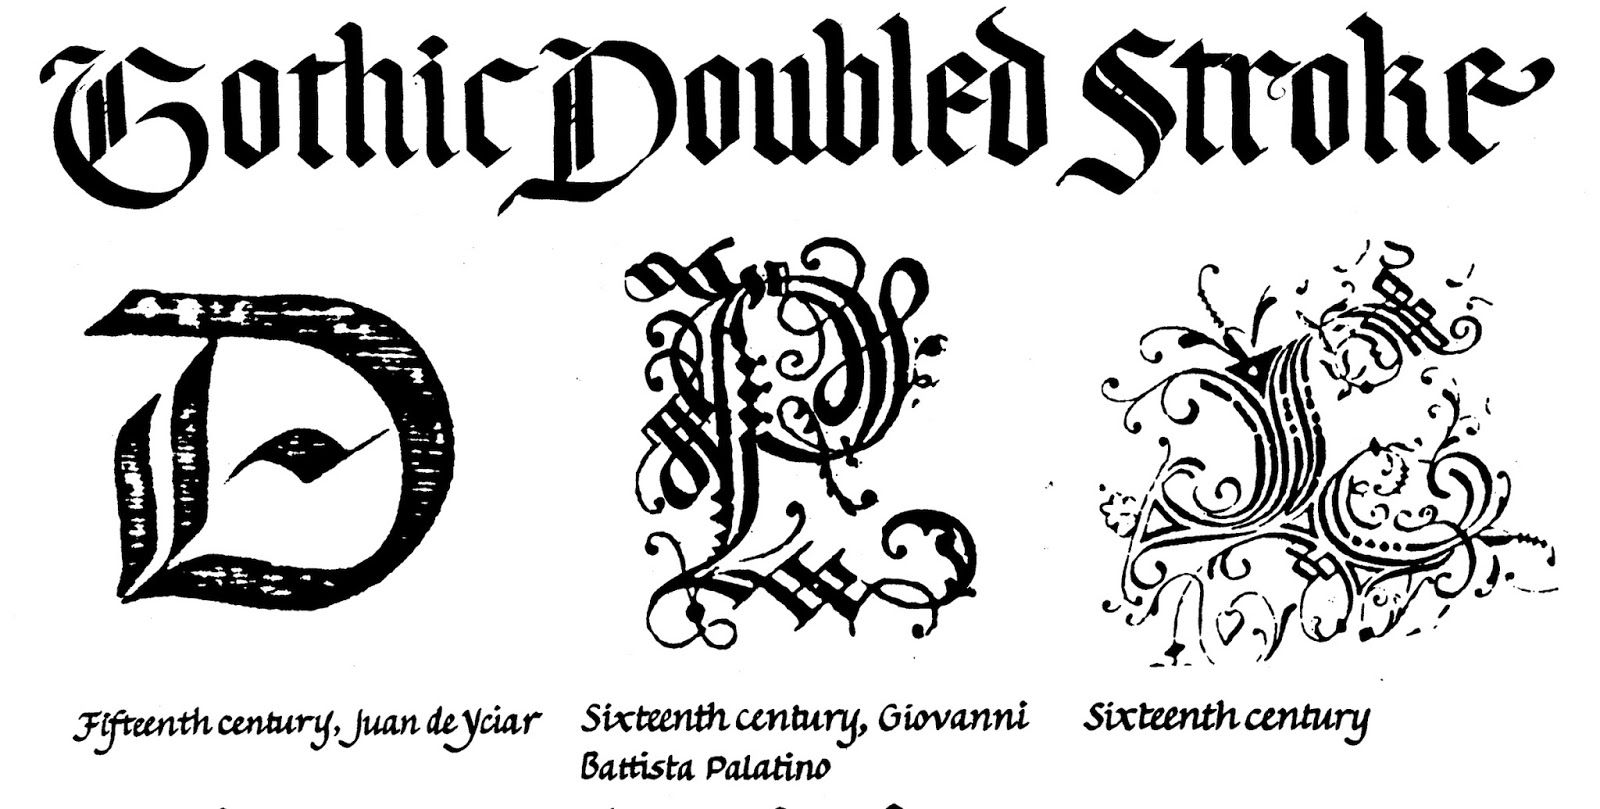 Gothic Doubled Stroke CfC